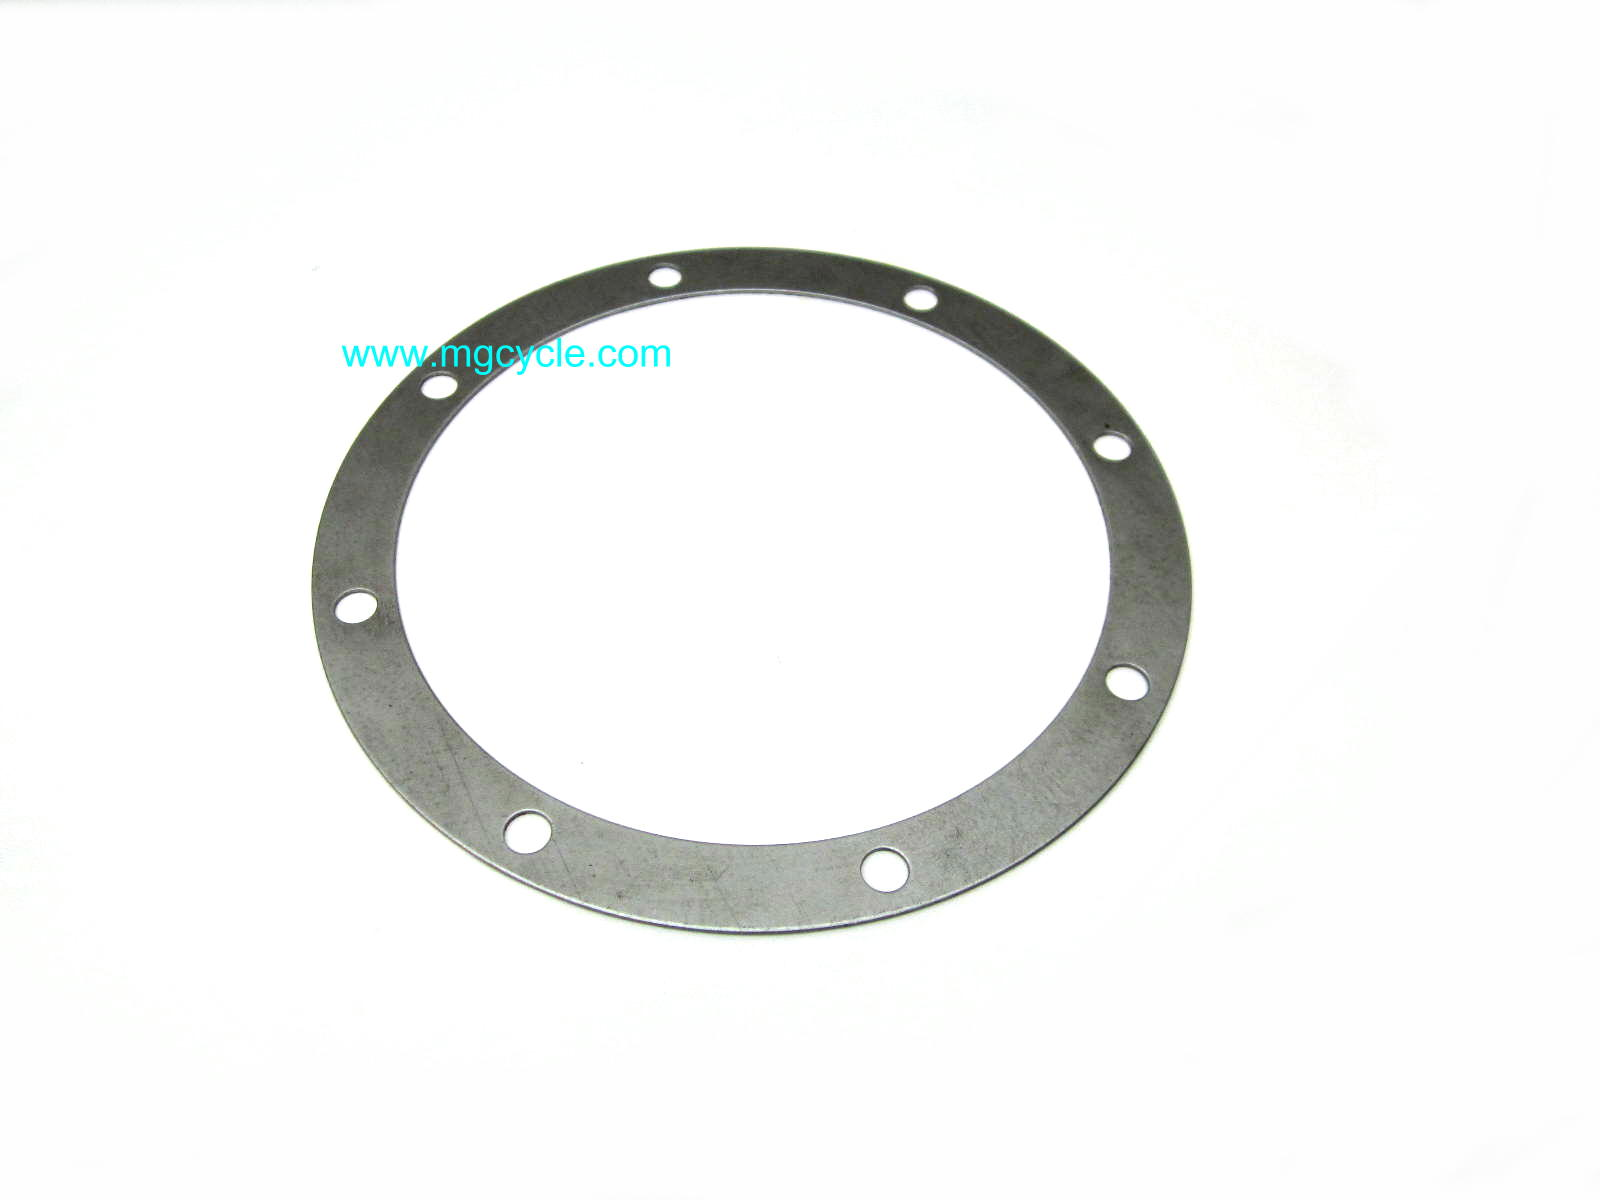 Rear drive box shim, large, Disc brake 1.2 mm GU17355408